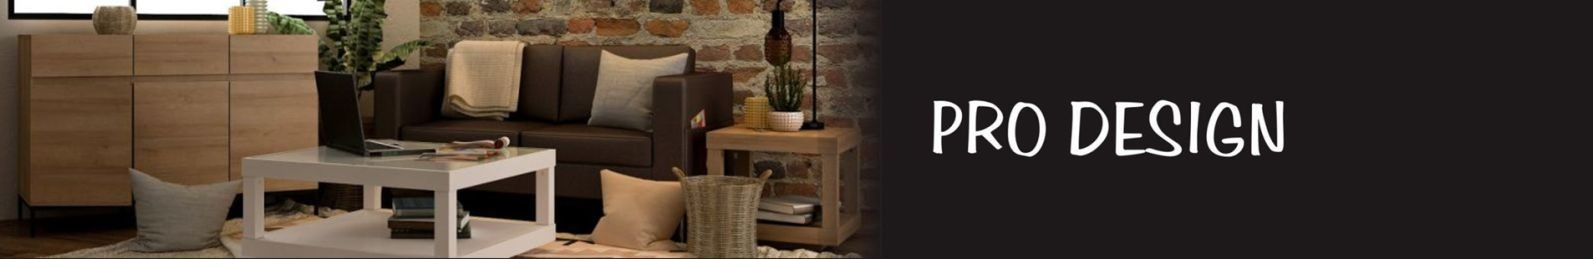 Prodesign Furniture